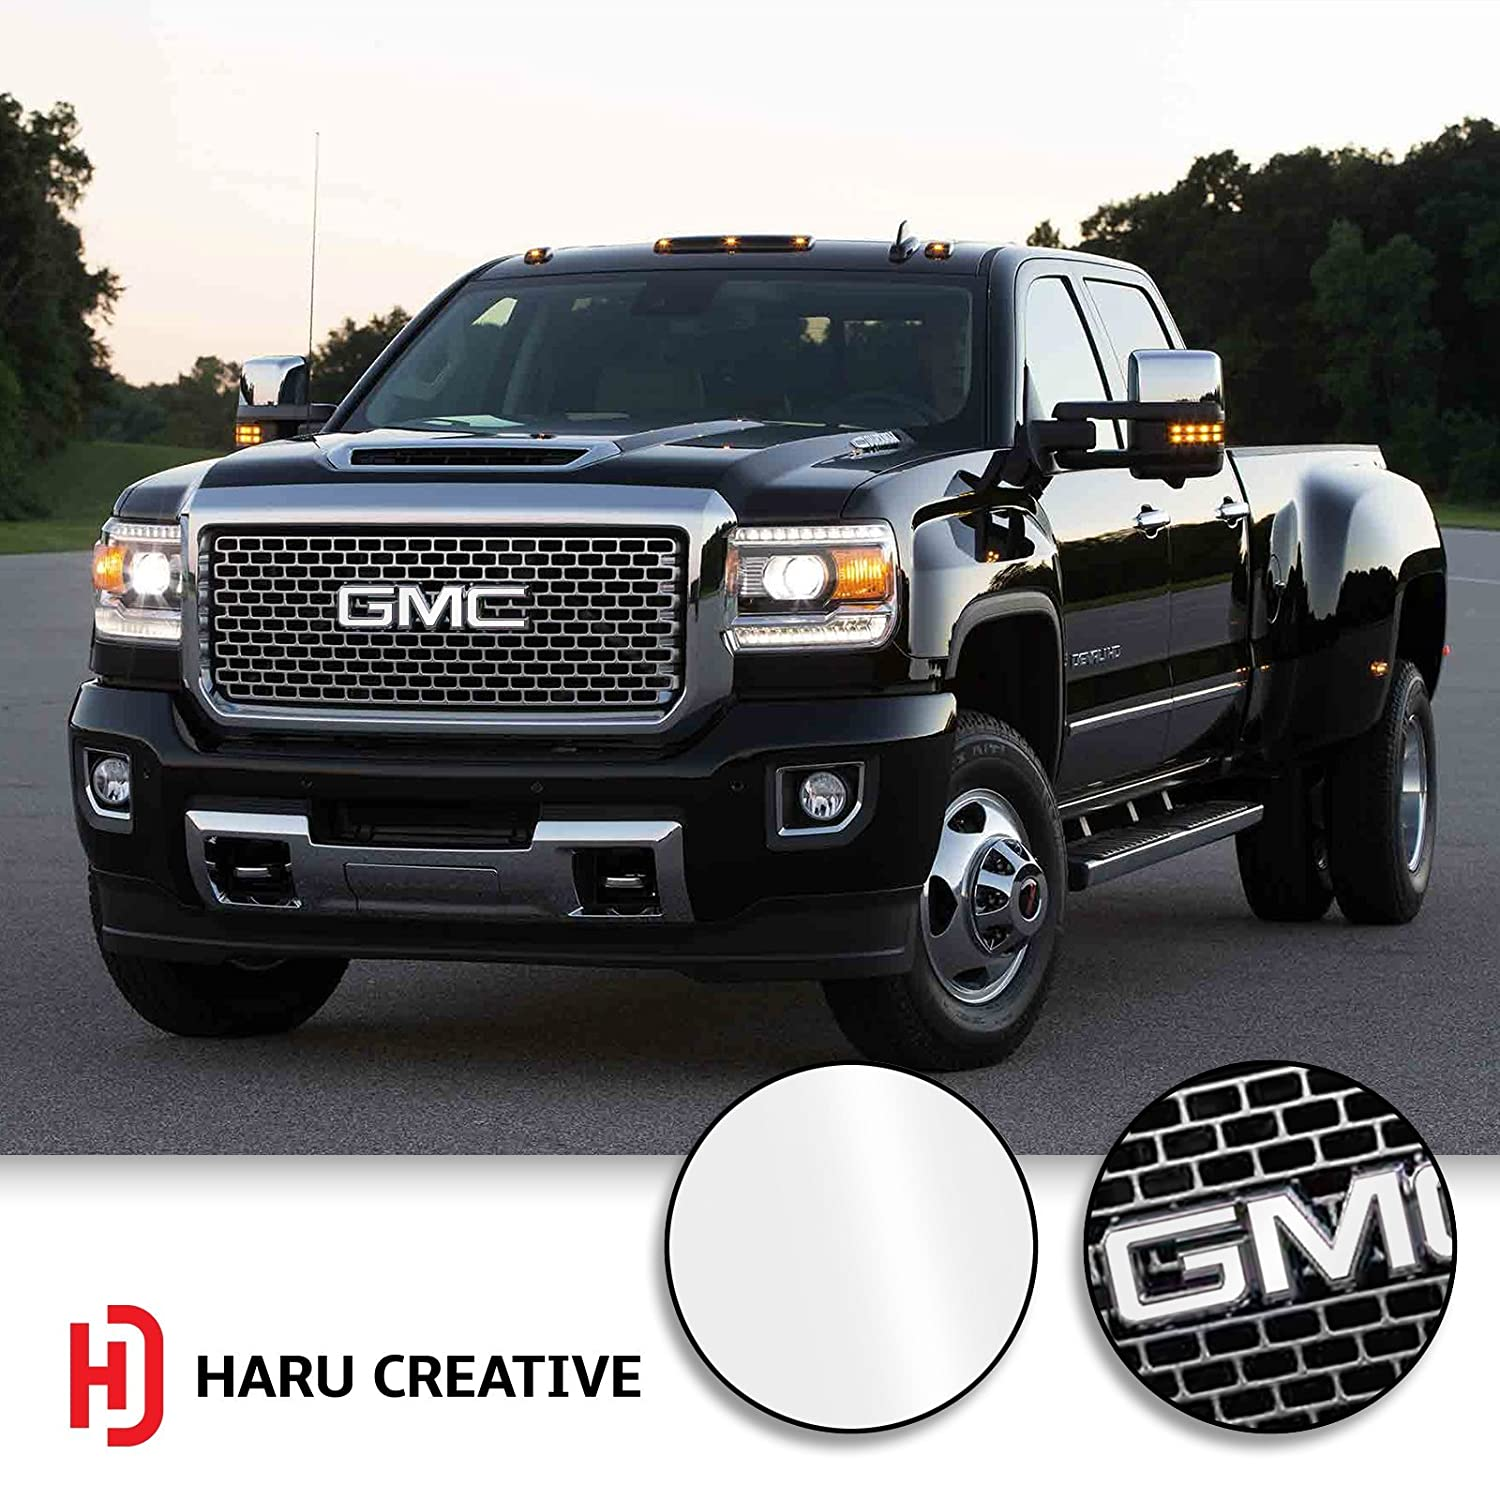 Haru Creative Gloss White Loyo Grille Hood Trunk Tailgate Emblem Letter Overlay Vinyl Decal Sticker Compatible Fits GMC